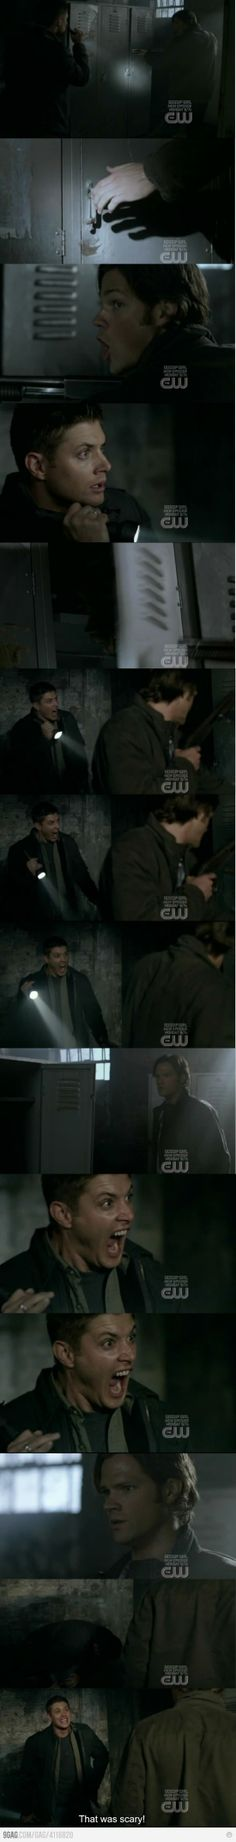 This scene had me laughing for as long as Dean was screaming!